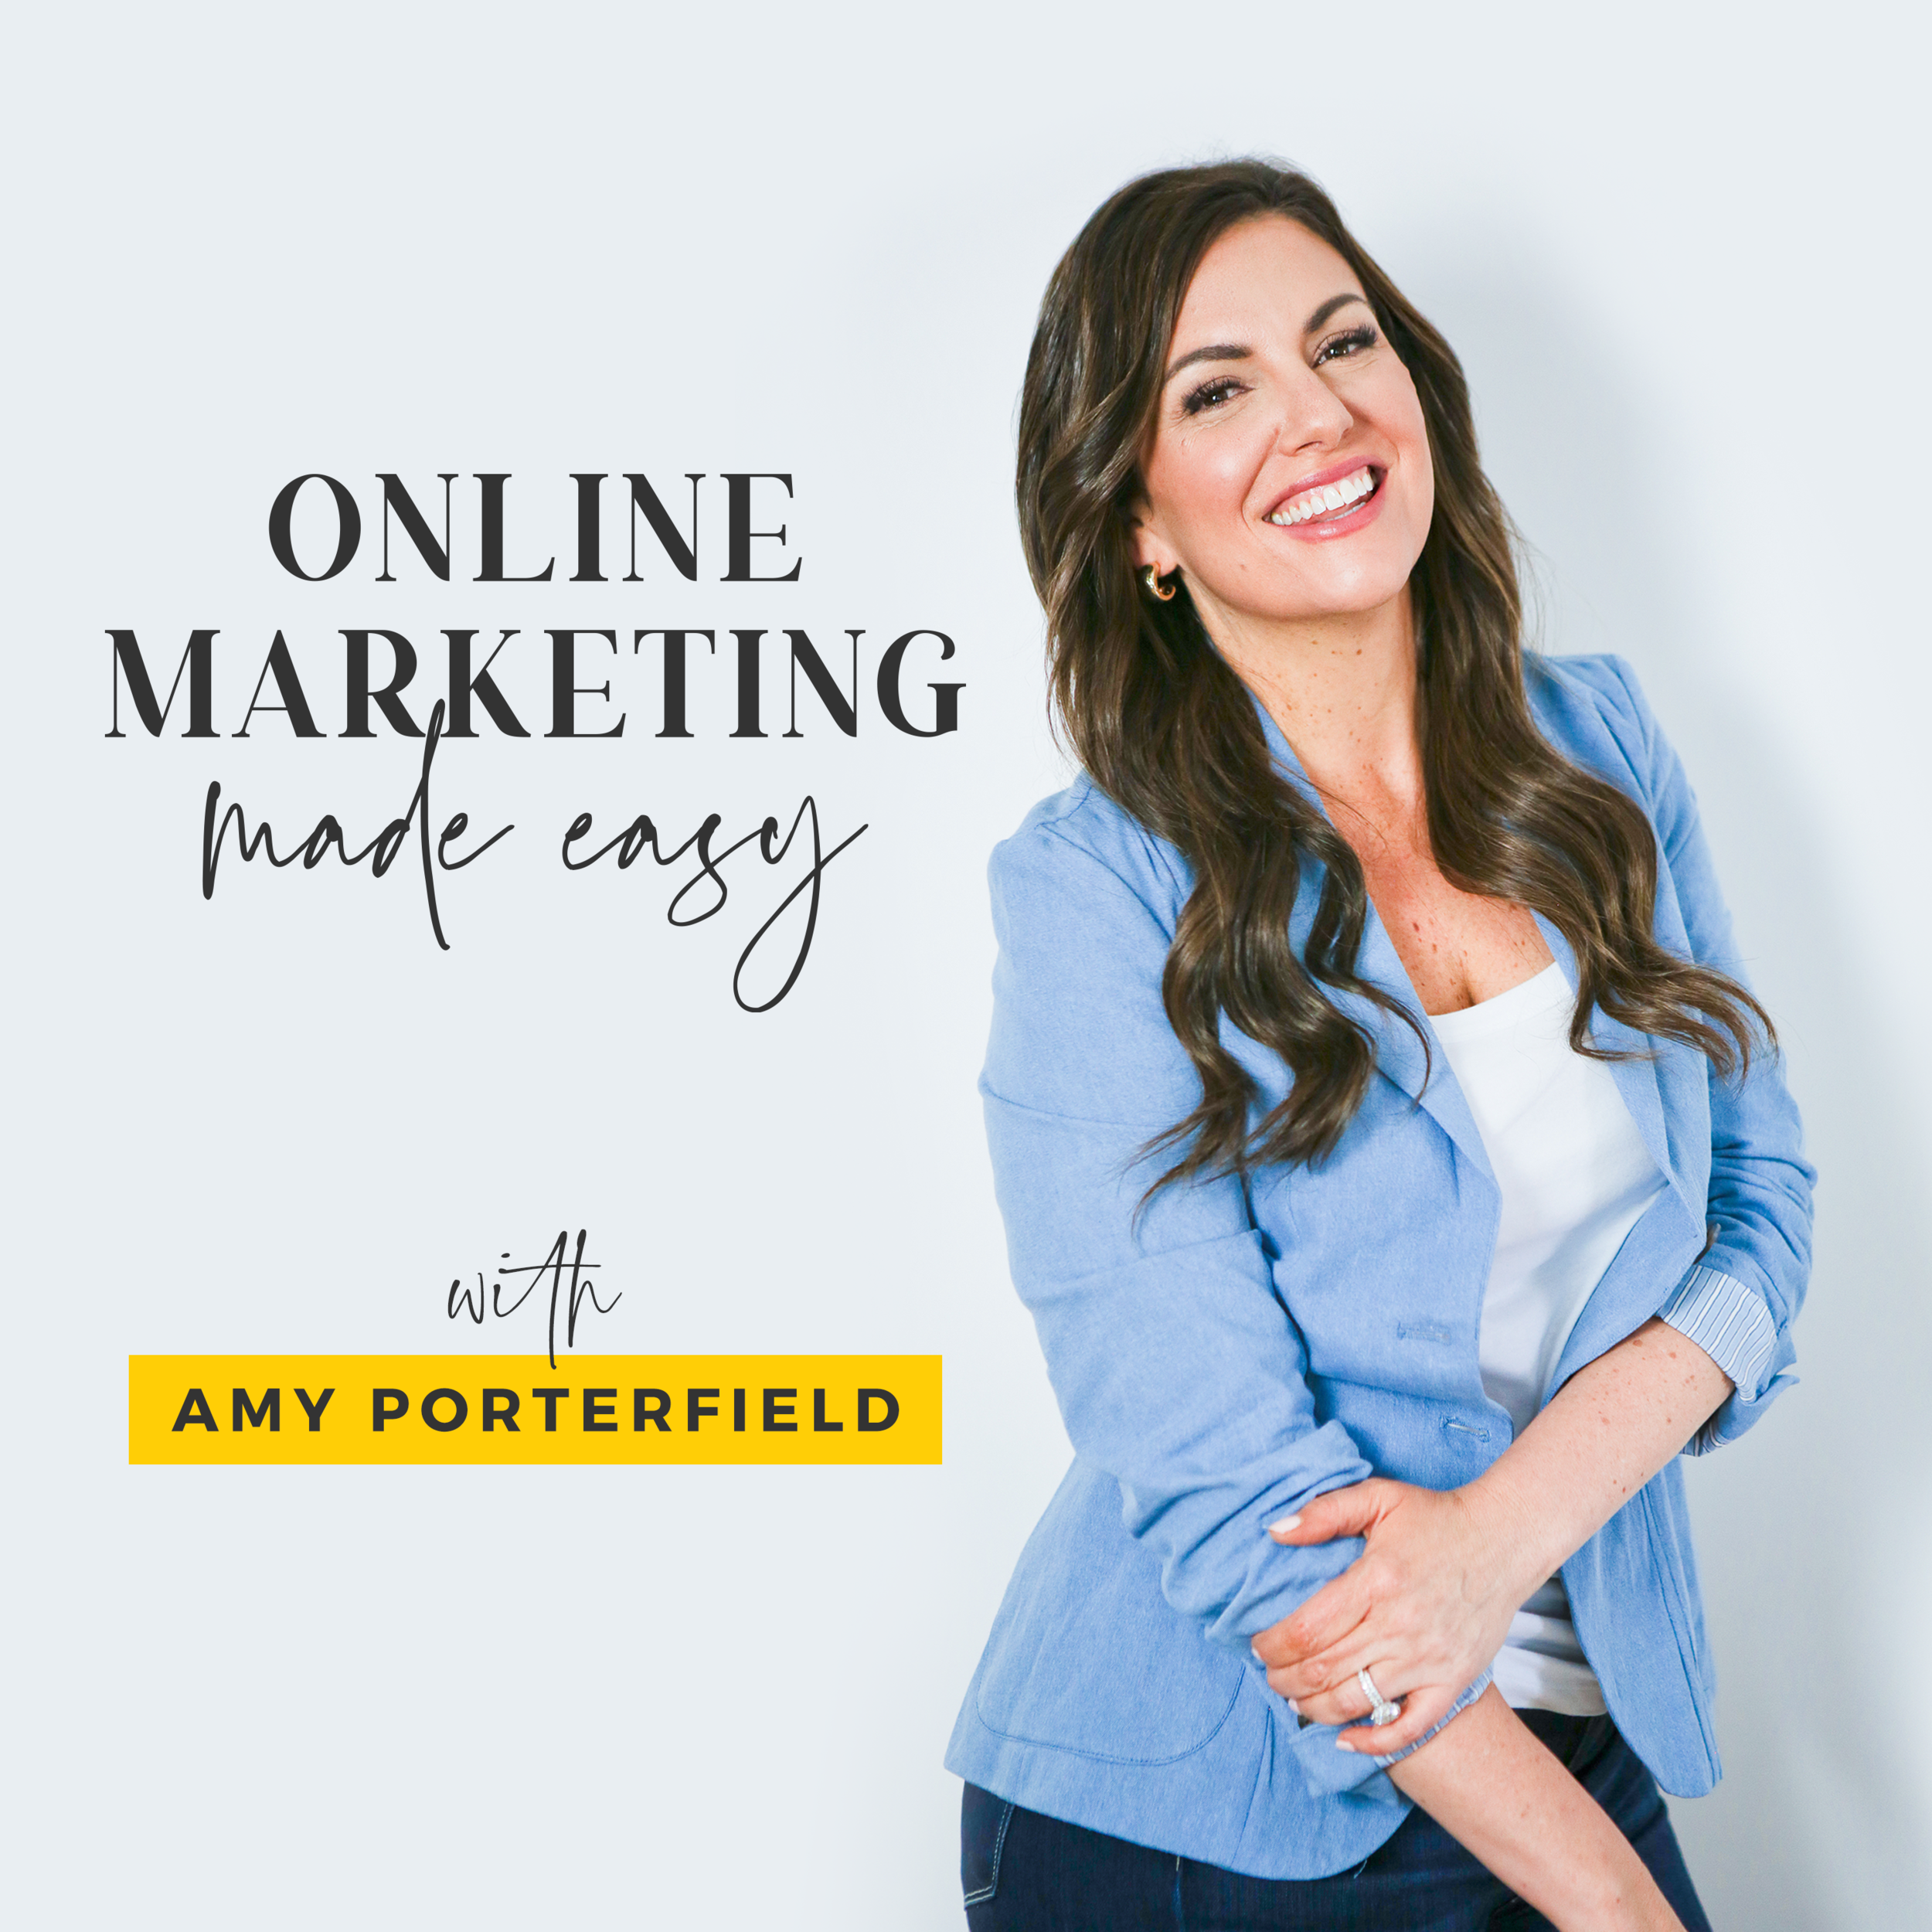 $440.000 Success Story - Amy Porterfield interviewed me and my previous client about our success using my transformational sales system.The total sales from my method generated my client $740.000 in sales, using only $10.000 in ads - from a previous revenue of only $25.000,-In geek terminology - that's a 1500% increase in sales within a year.Listen here